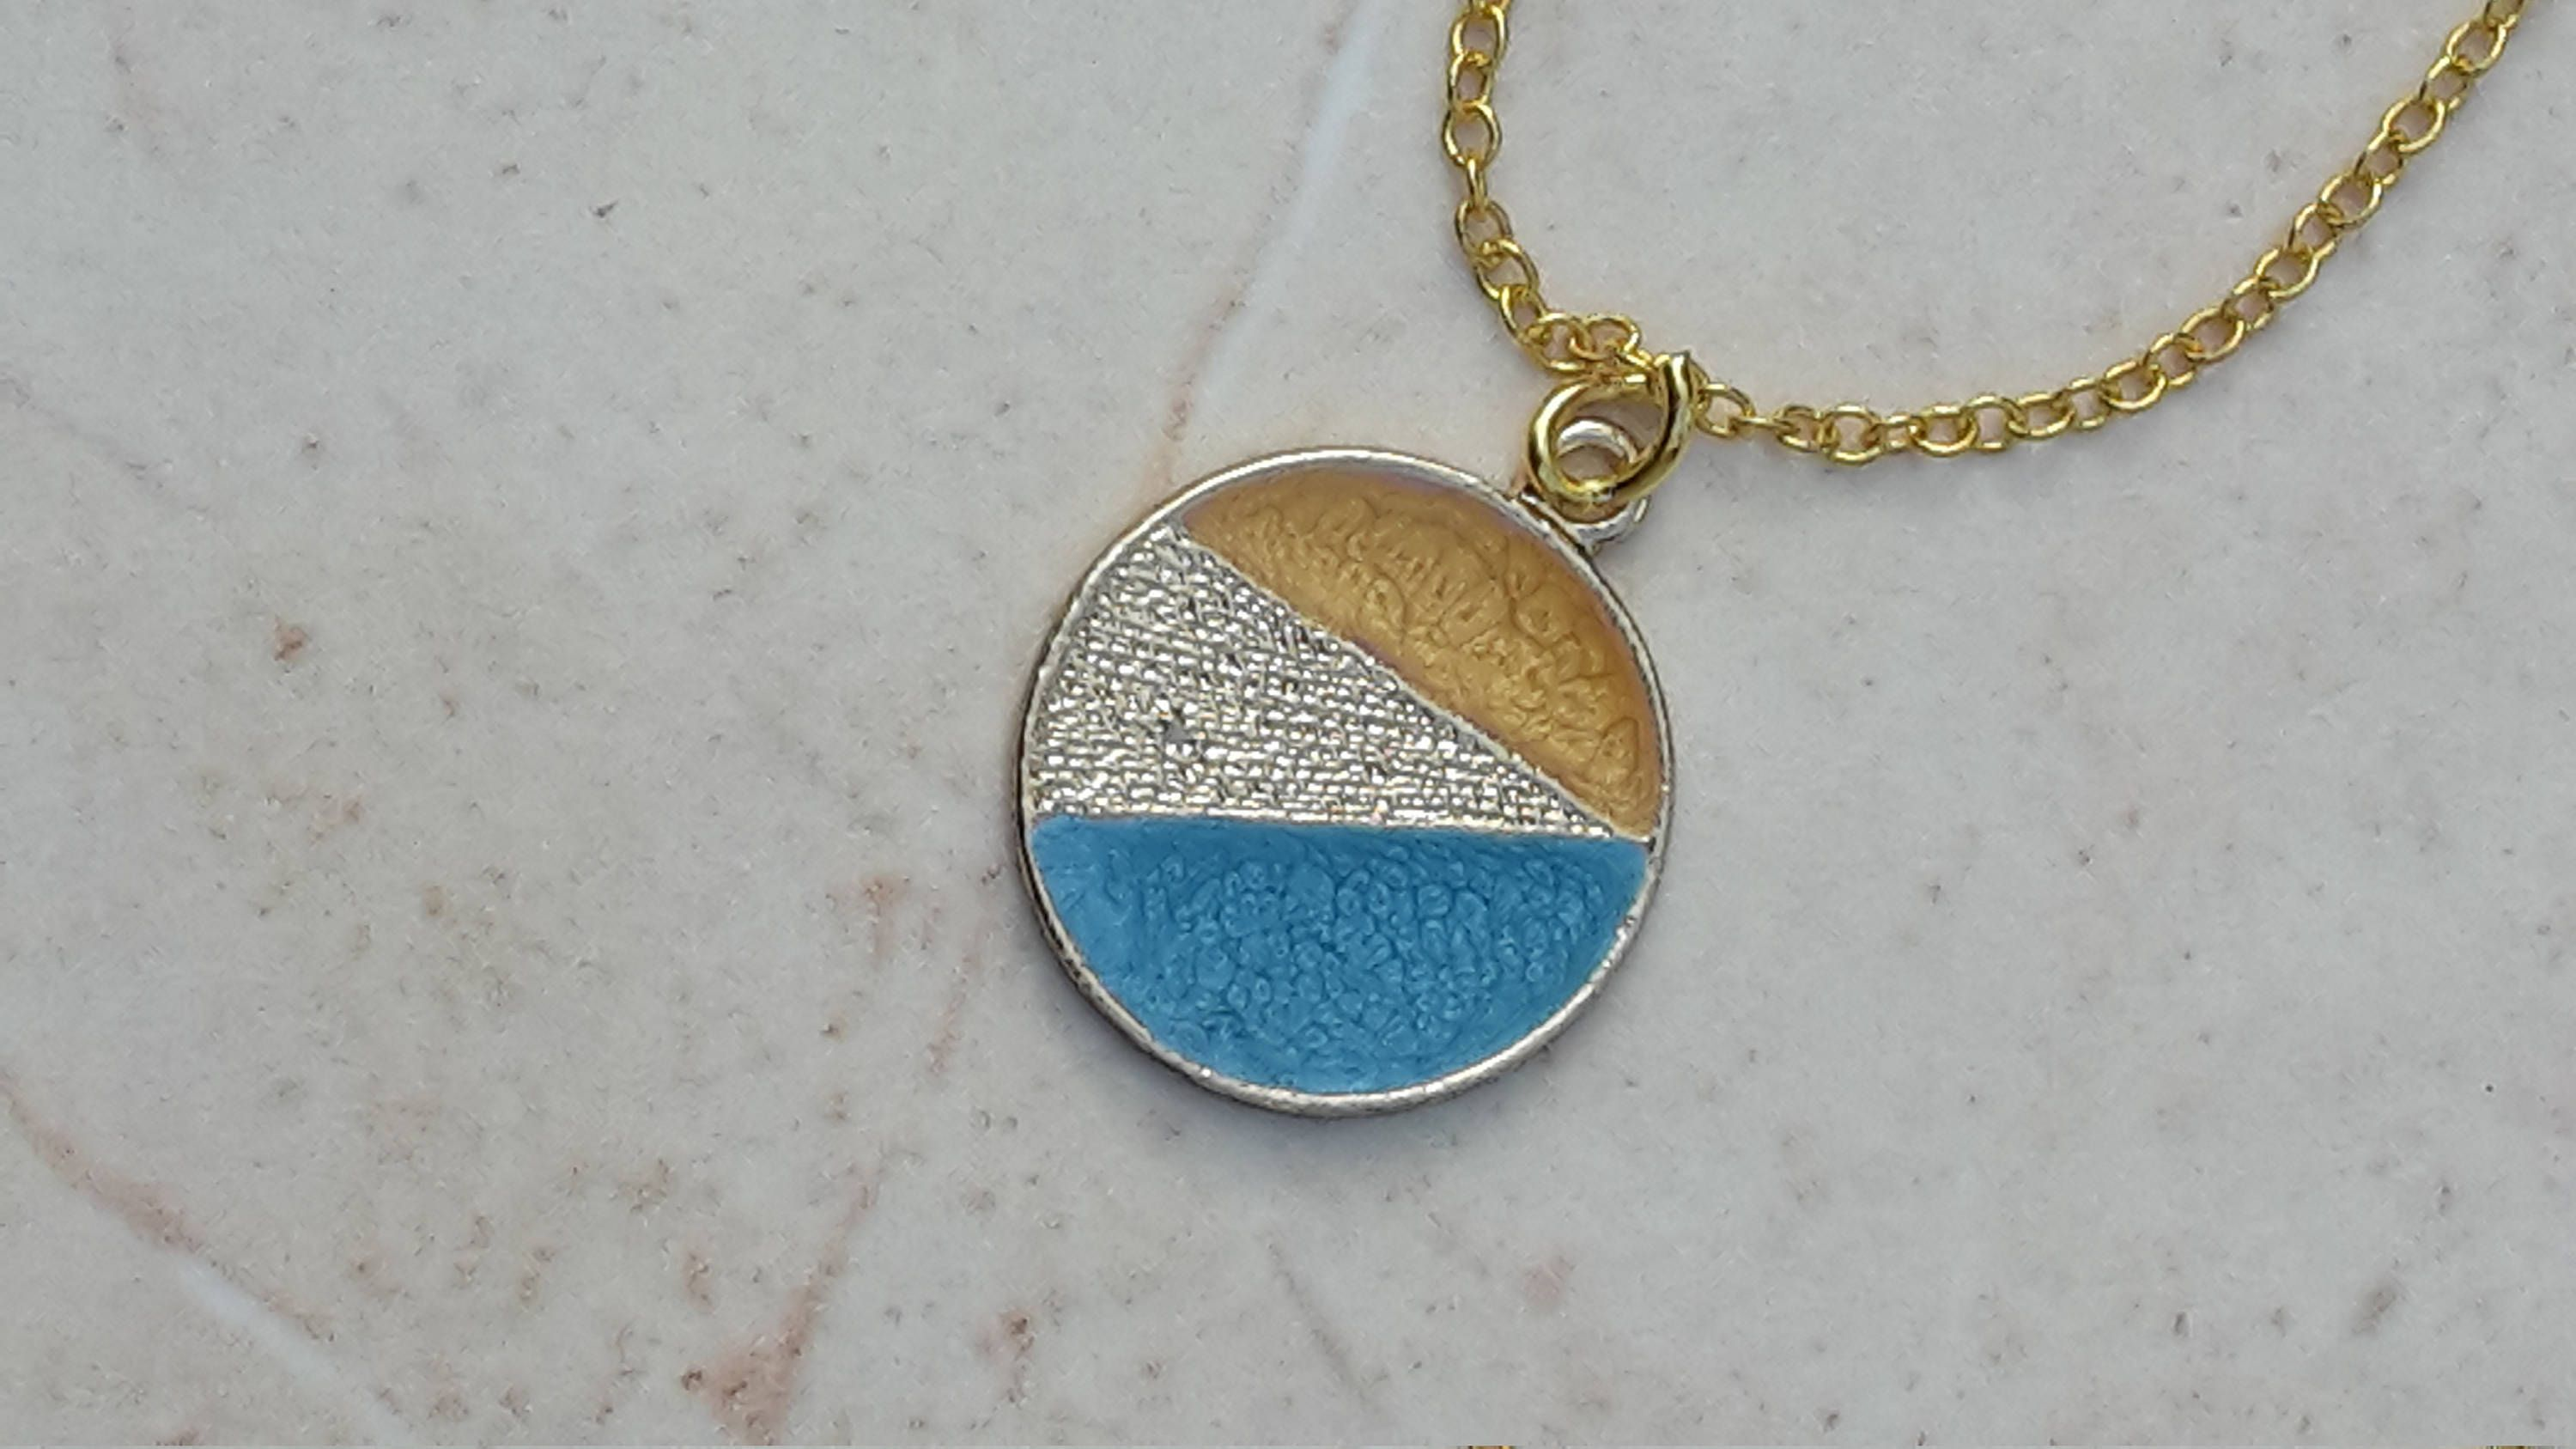 Small Circle Pendant With Bright Blue And Yellow Colour Details